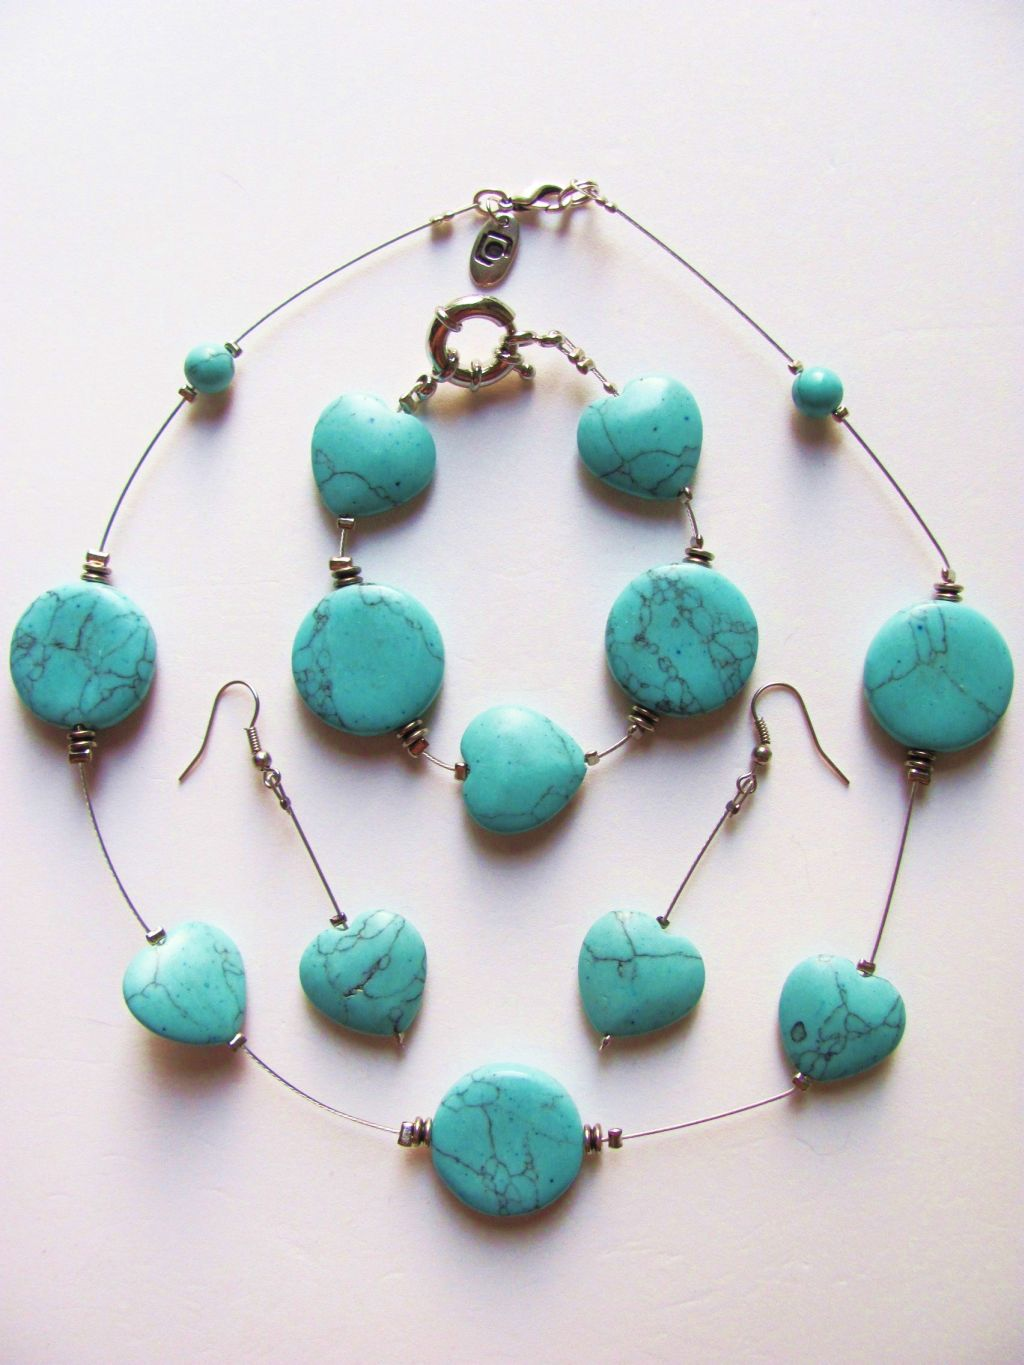 Genuine Turquoise Large Heart Beads Necklace Bracelet Earrings Set